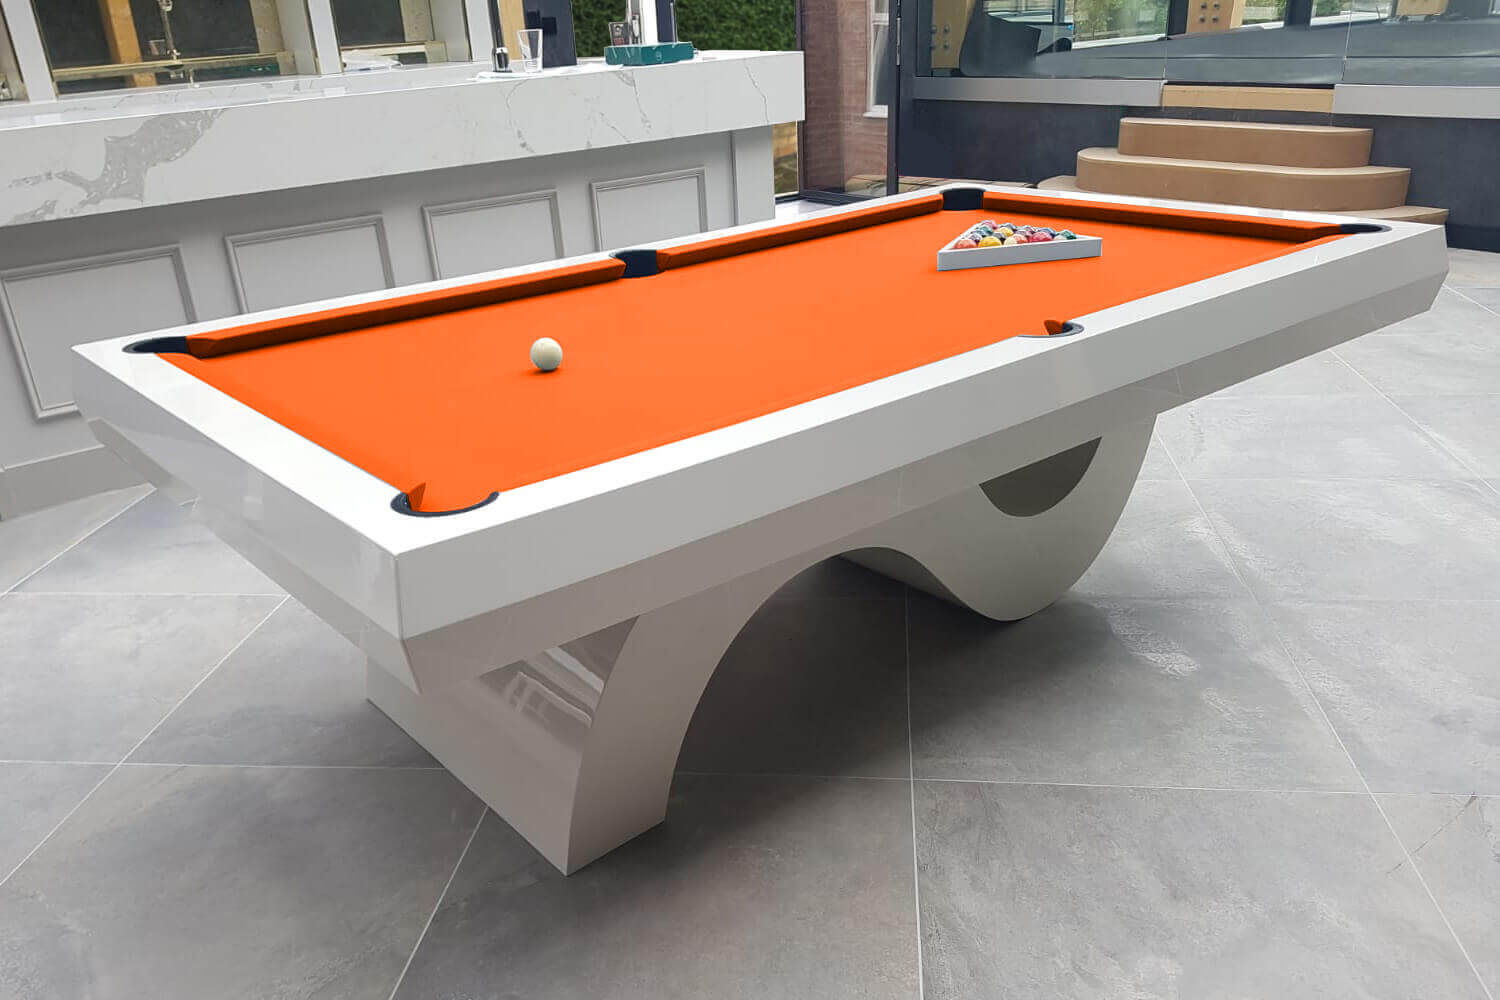 The Picasso Slate Bed Pool Table Liberty Games